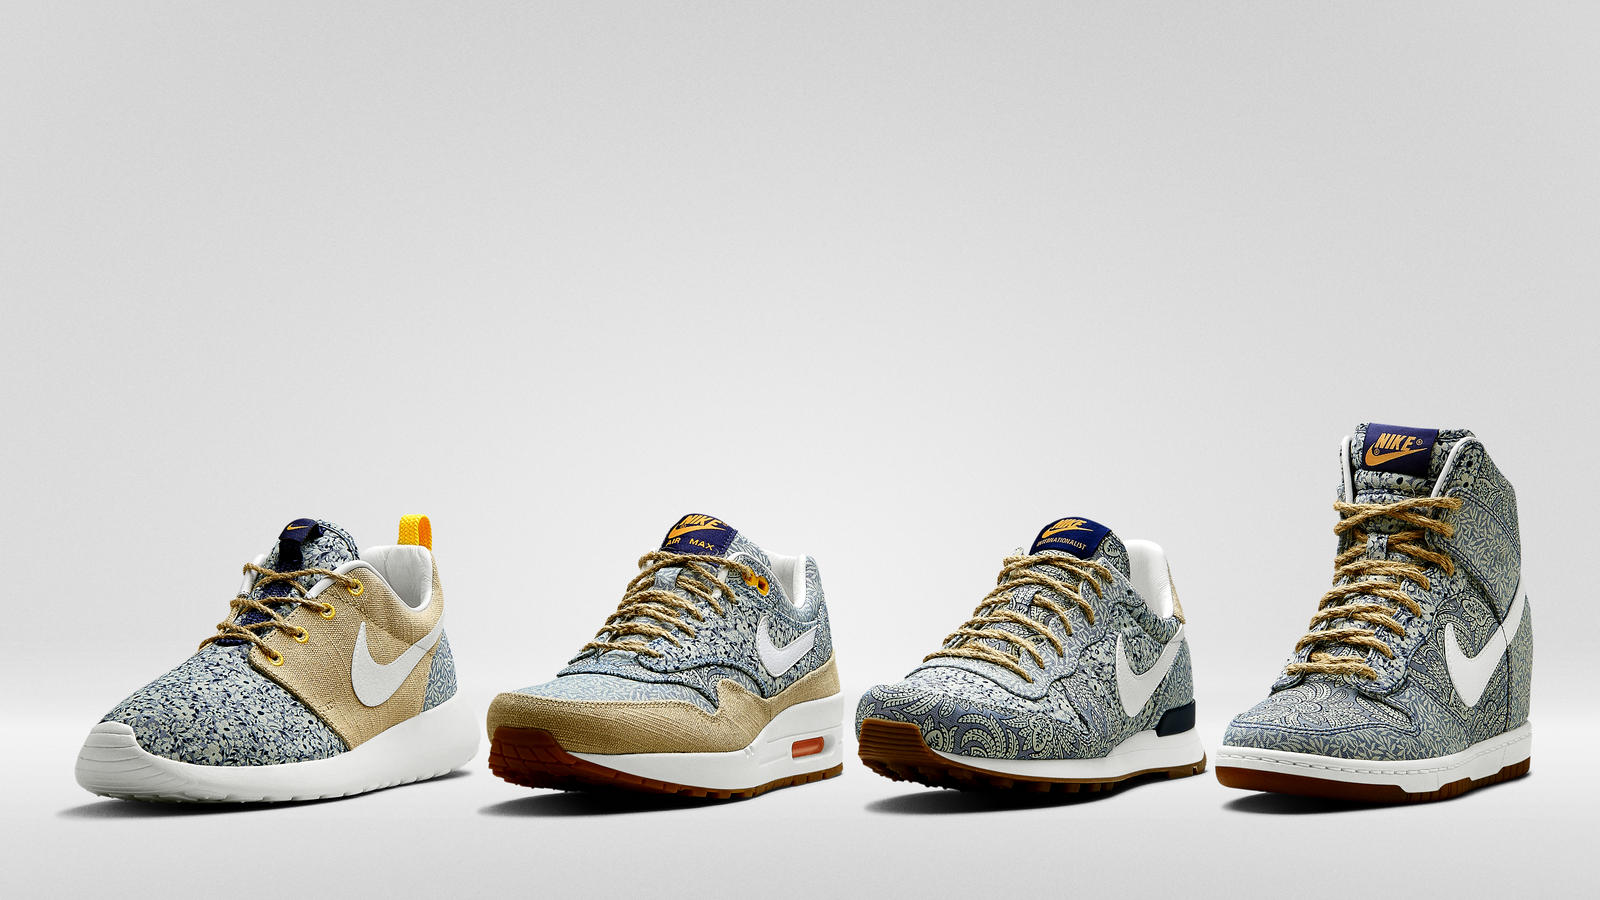 fc6c0a474b74 Nike and Liberty Reveal Summer 2014 Collection - Nike News